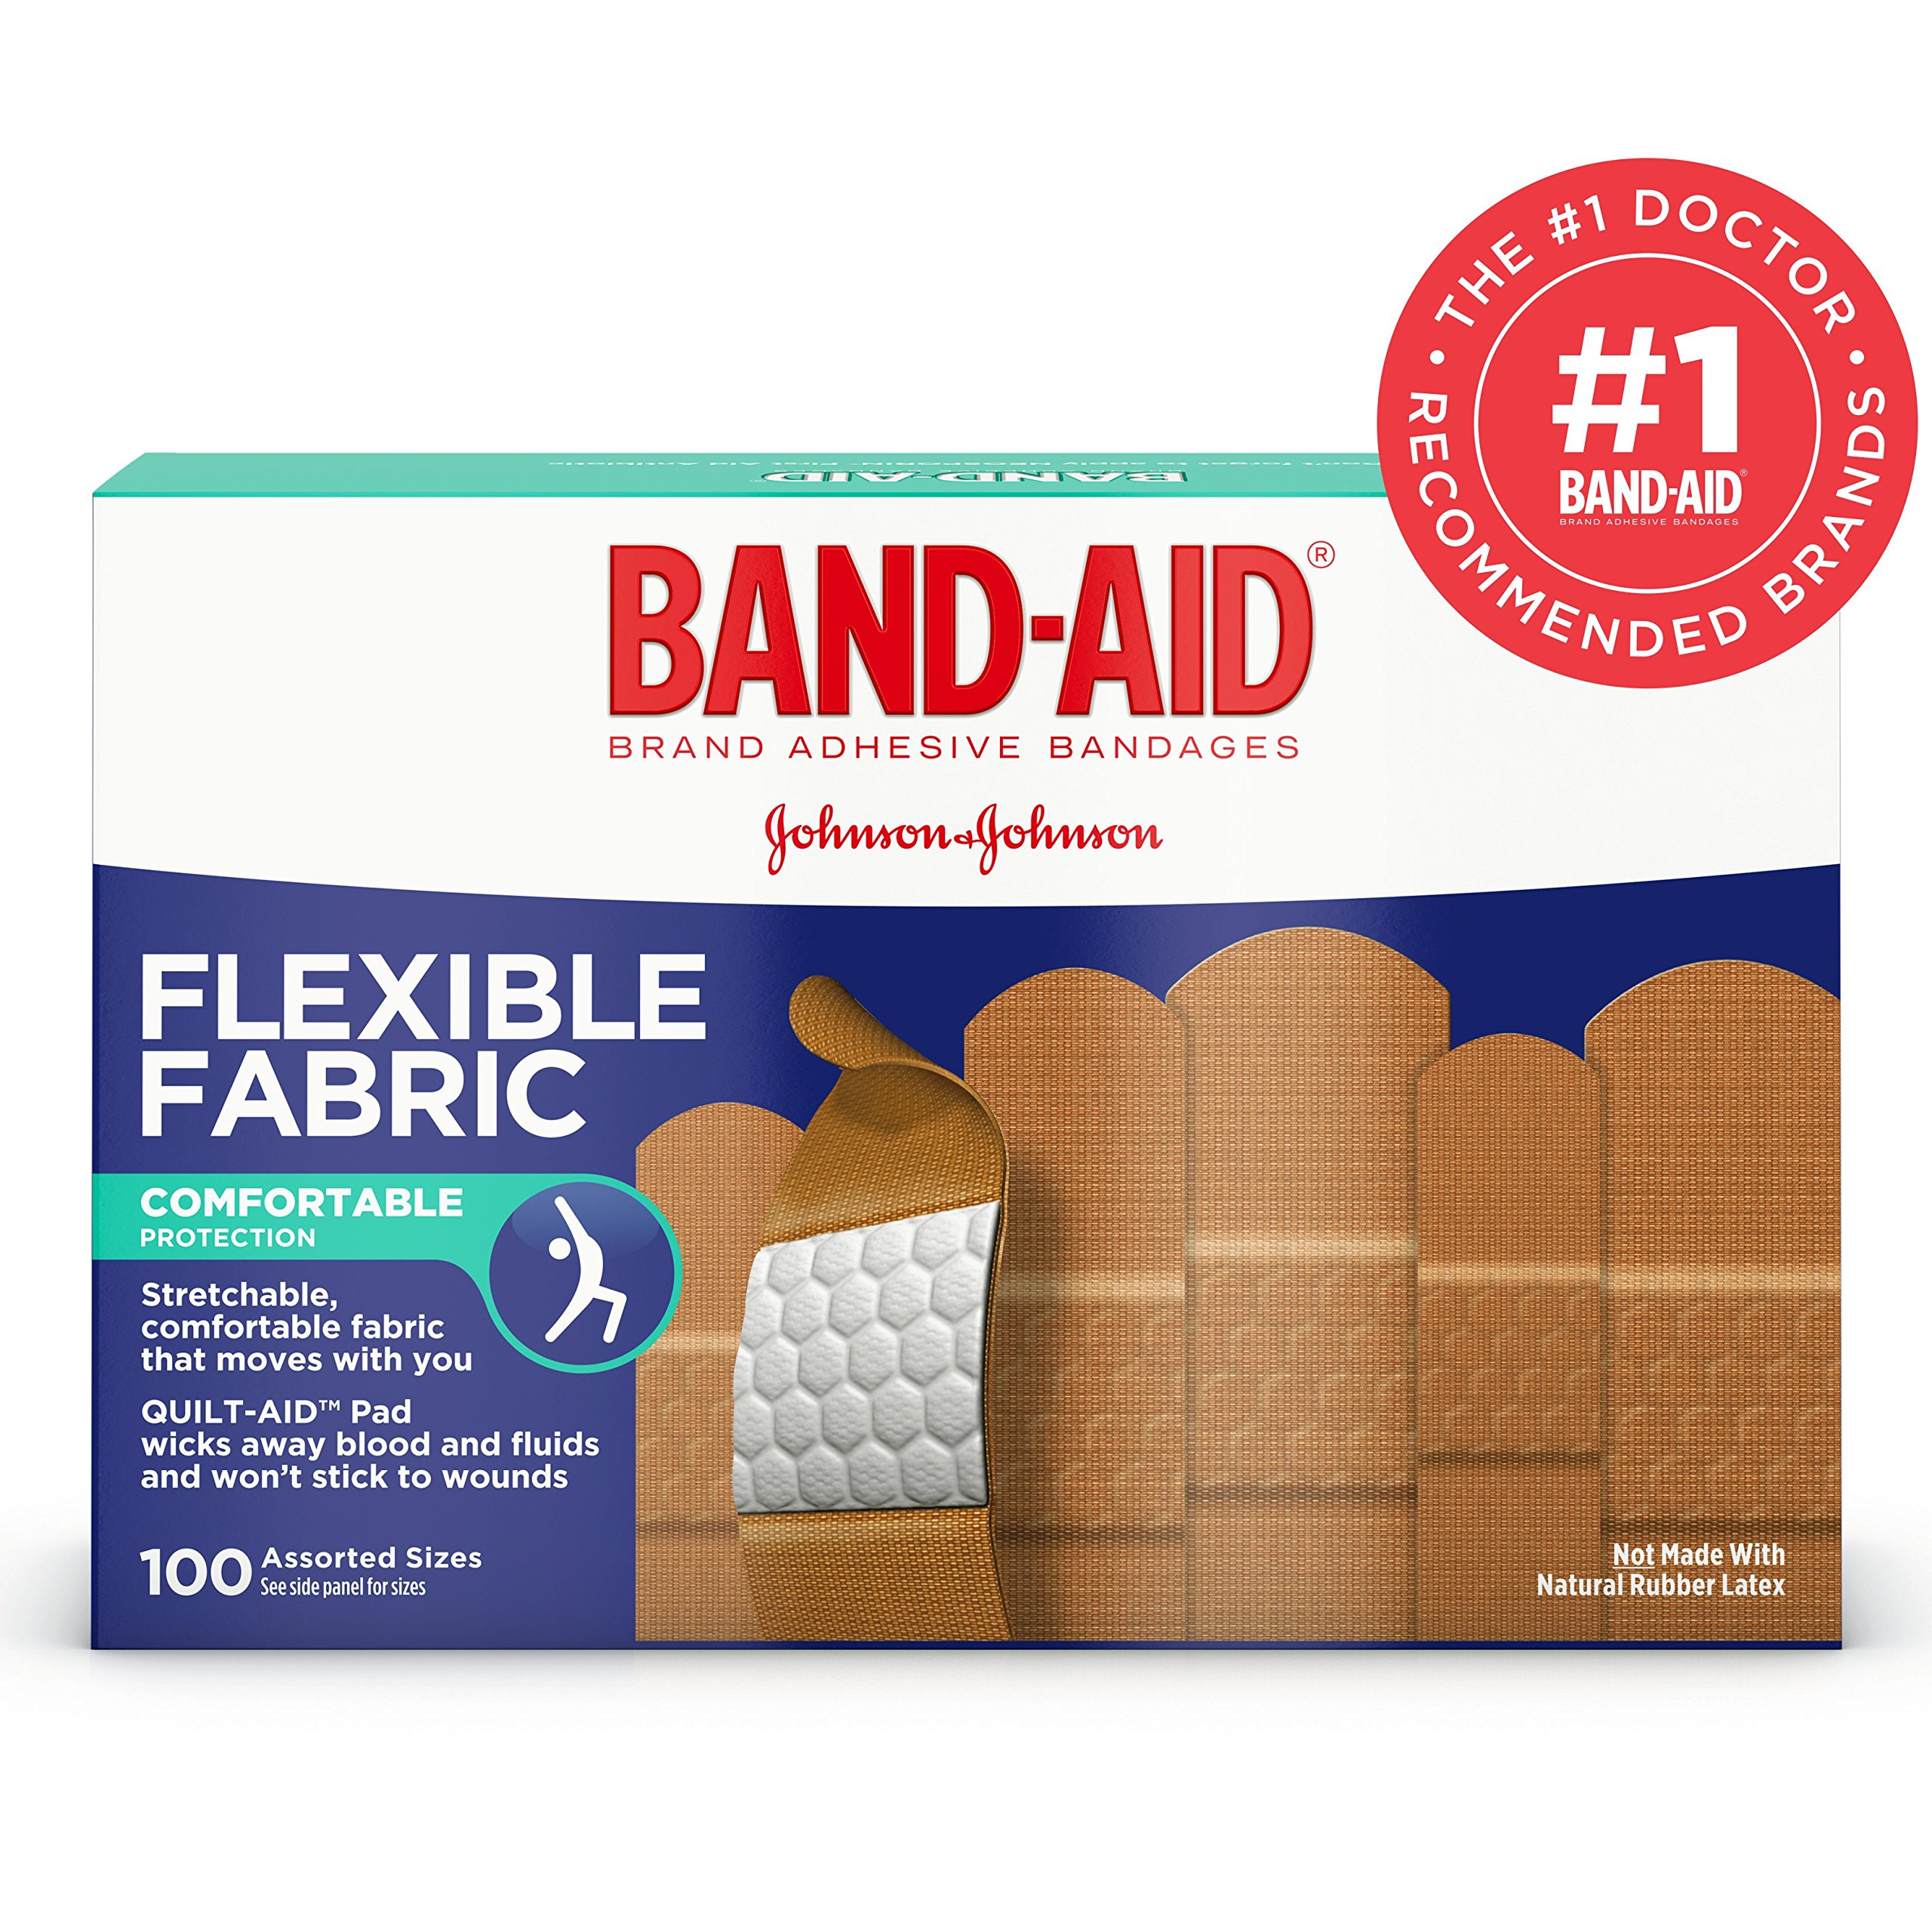 Band-Aid. Brand Flexible Fabric Adhesive Bandages, Assorted Sizes, 100 Count